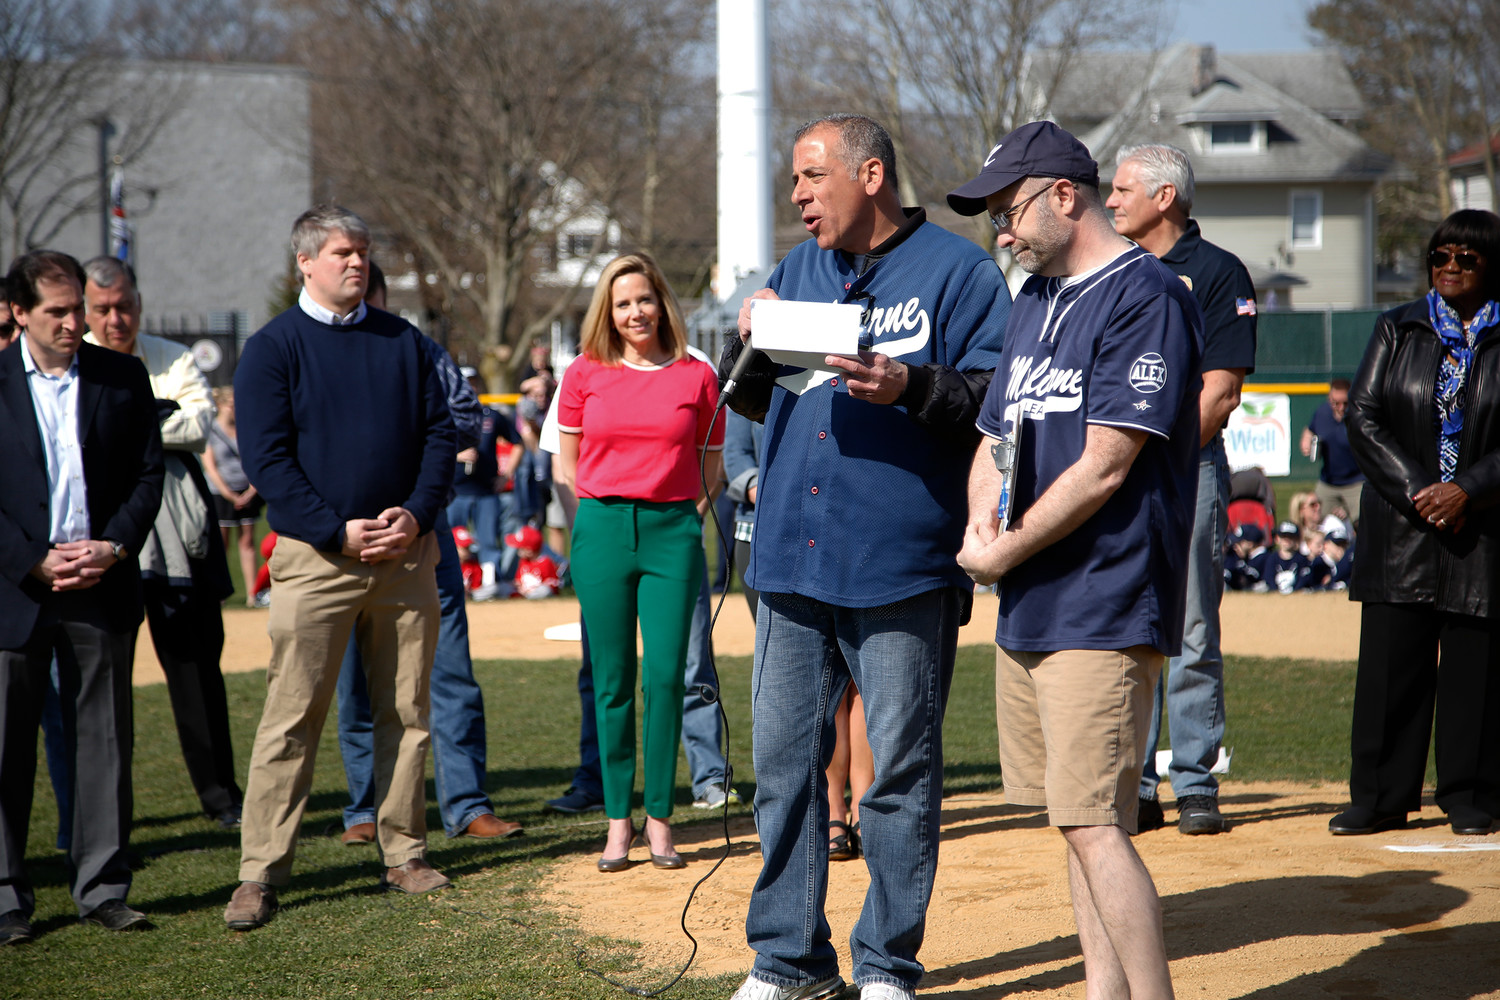 League President Joe Ariola spoke to the Opening Day crowd.